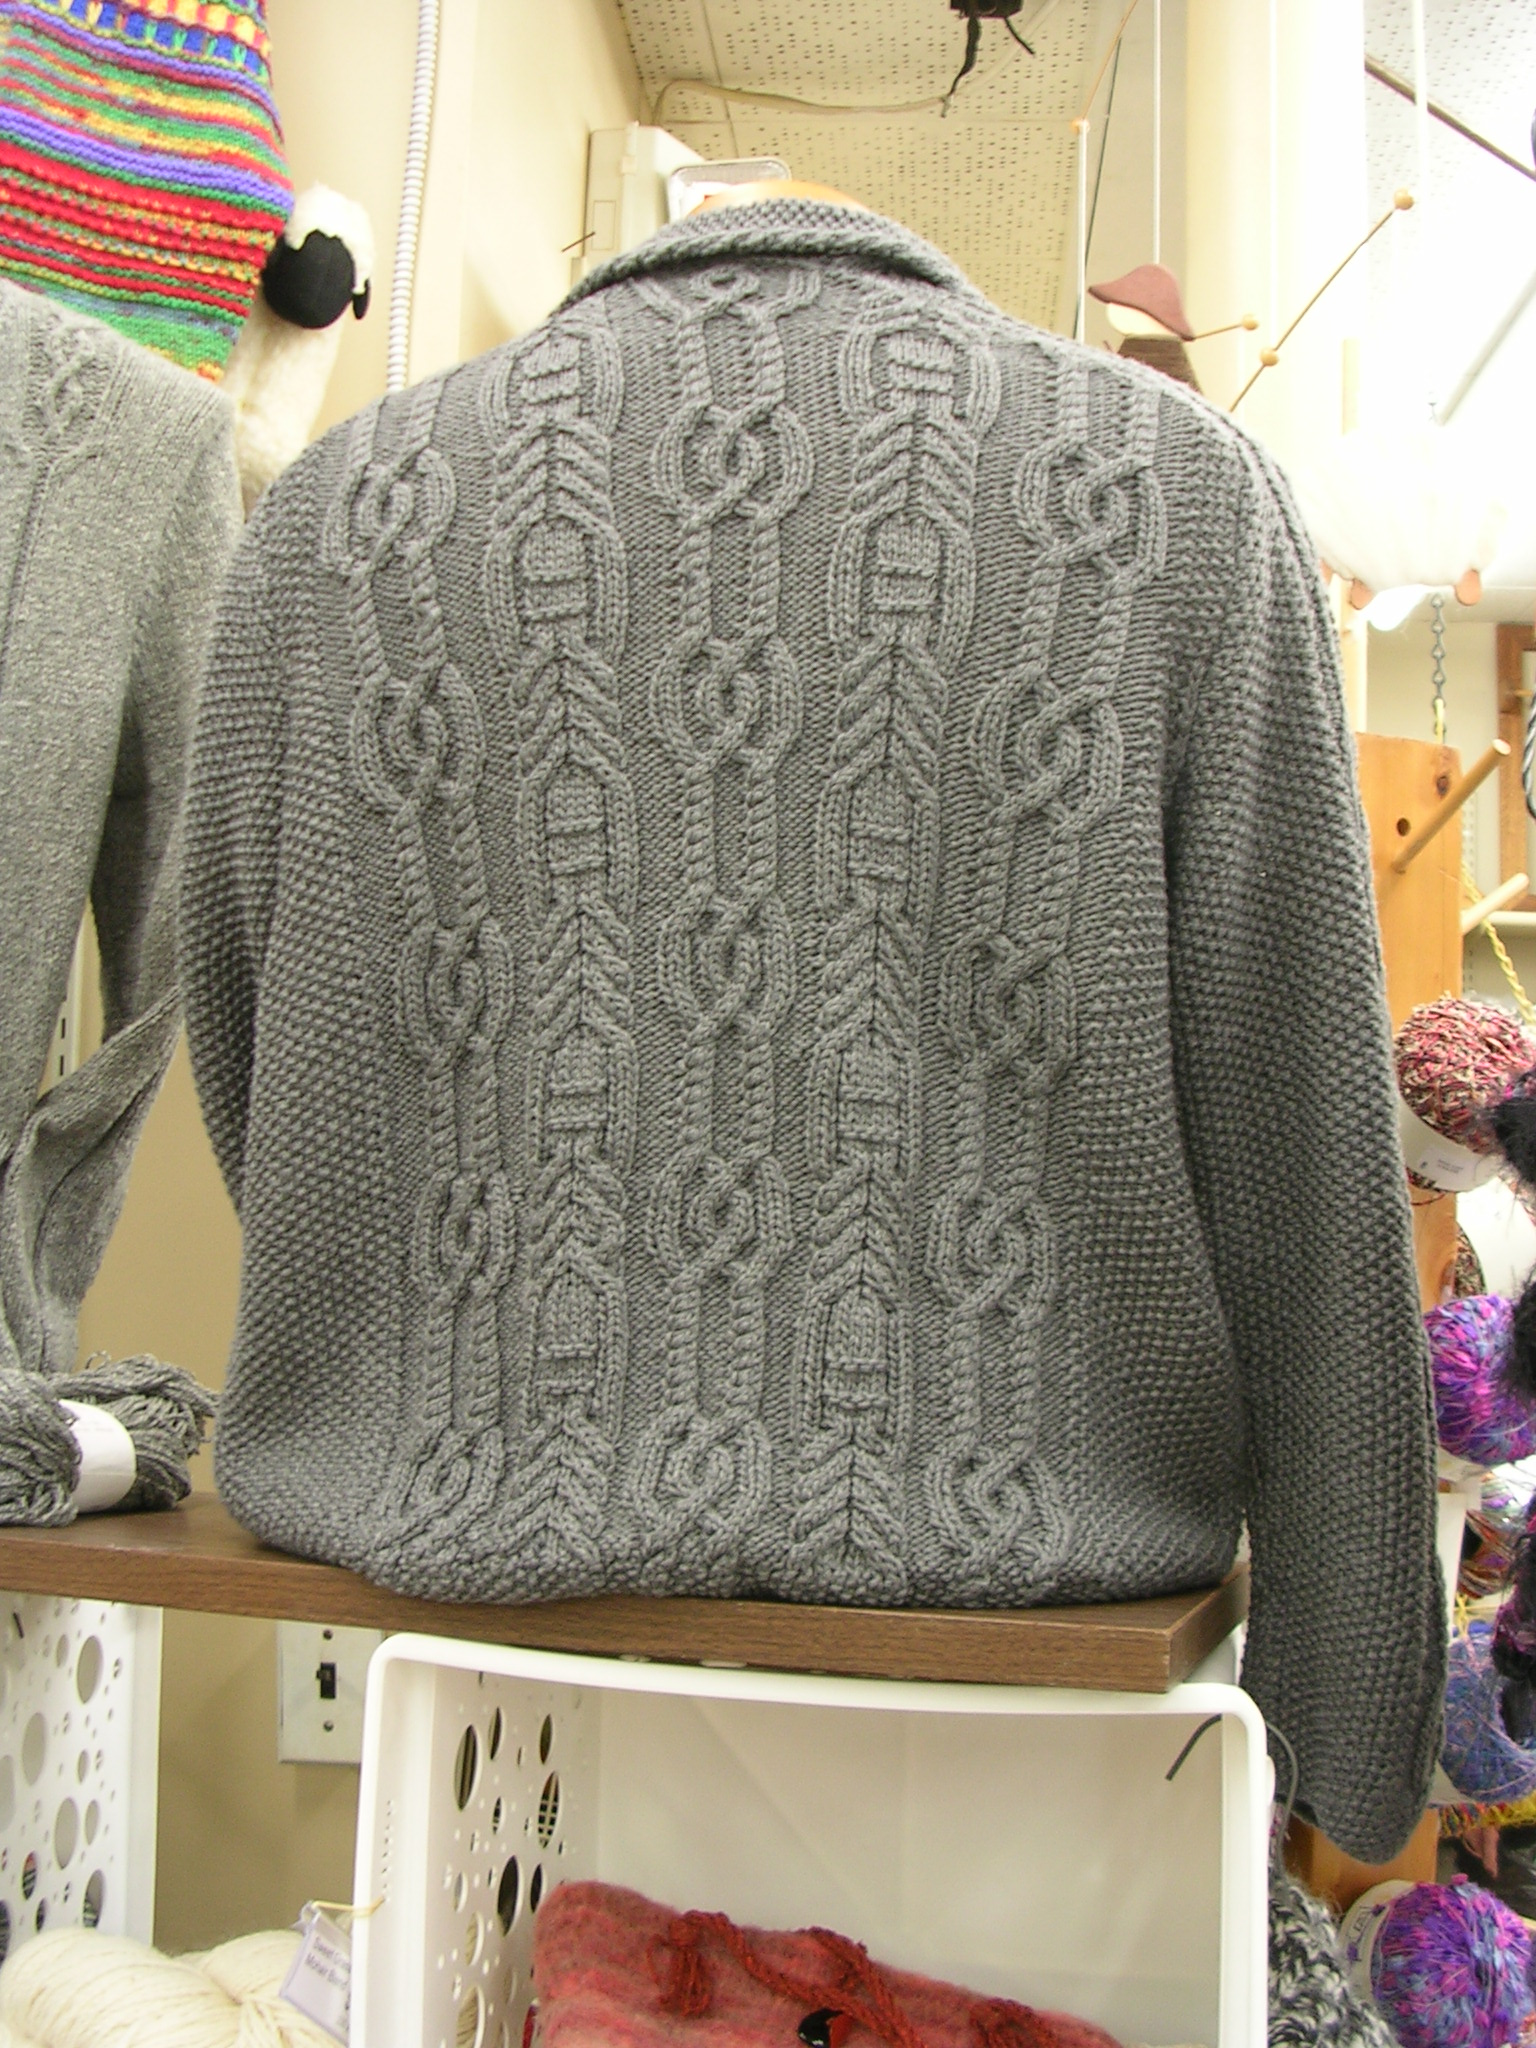 Back view of winning sweater